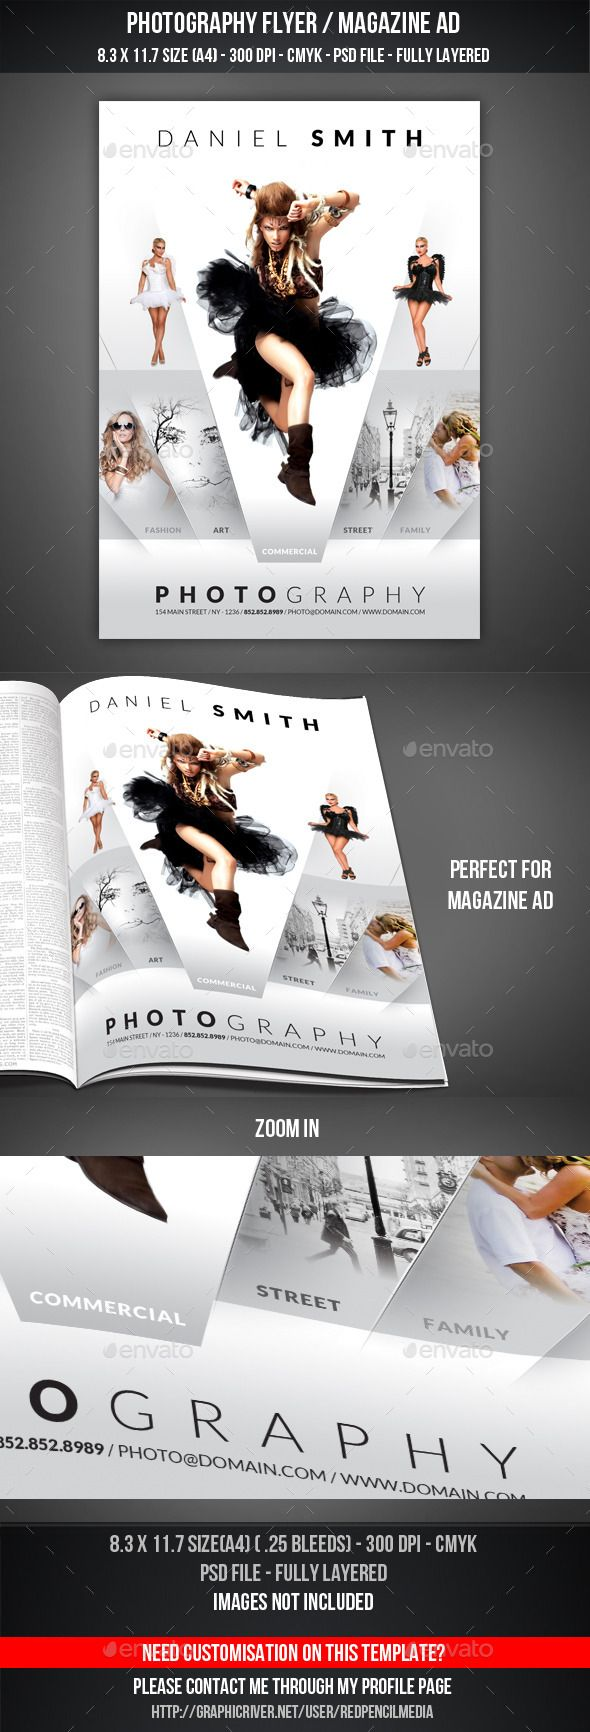 best ideas about photography flyer graphic photography flyer magazine ad